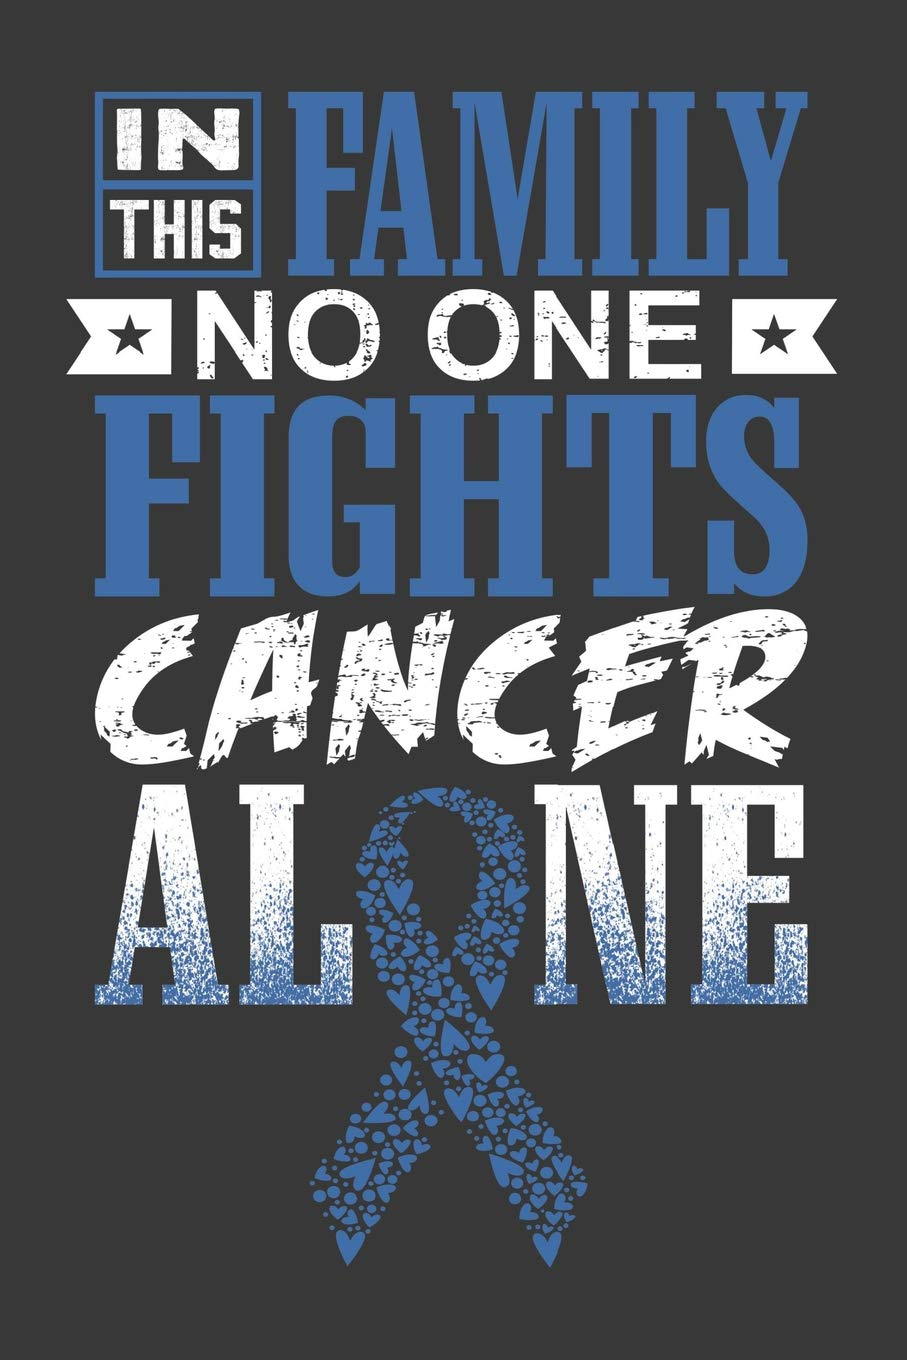 In This Family No One Fights Cancer Alone A Colon Cancer Journal Notebook Fighters 6x9 Blank Lined Journal Notebook Support Colon Cancer Research And Awareness Print Strong Ribbon Press Thoughts